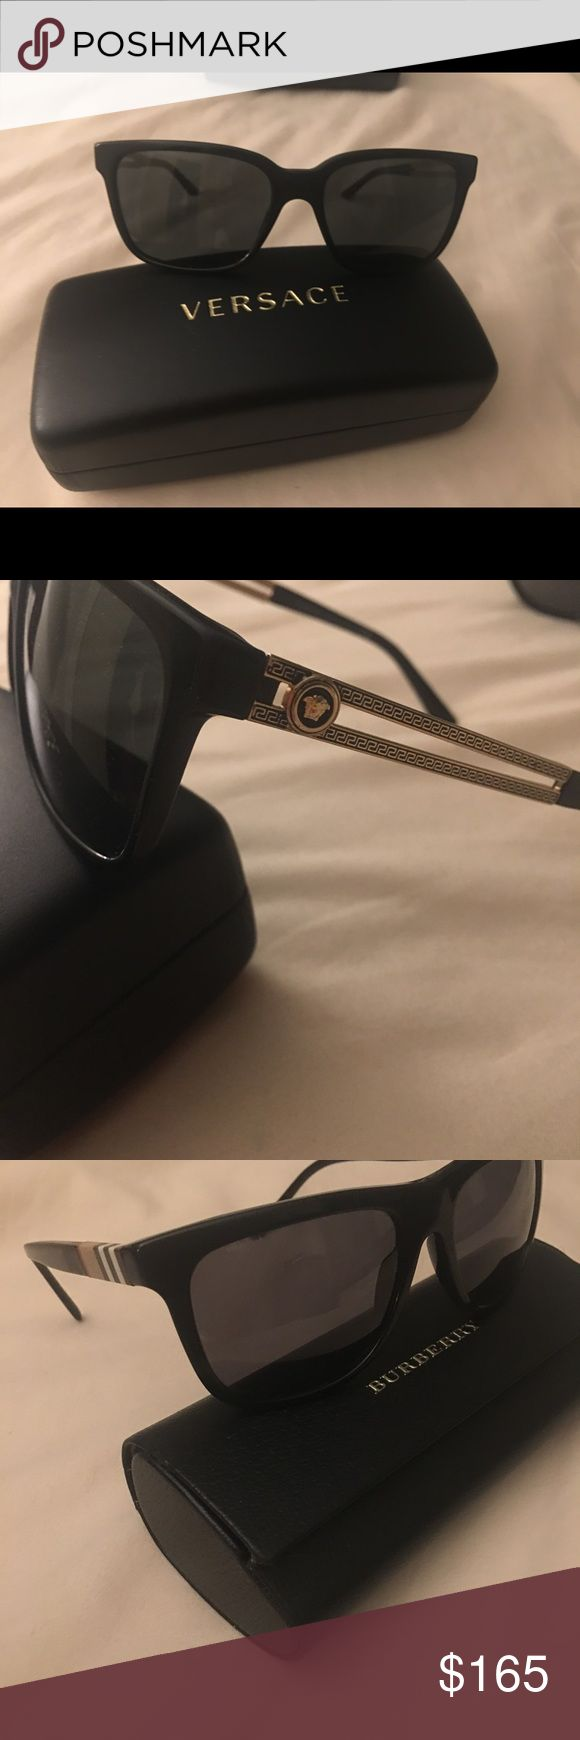 Versace and Burberry glasses I have 2 pair of sunglasses, one Versace with case and cleaning clothe, and the other Burberry with case. I'll take 150 for the Burberry and 165 for the Versace. Versace Accessories Sunglasses